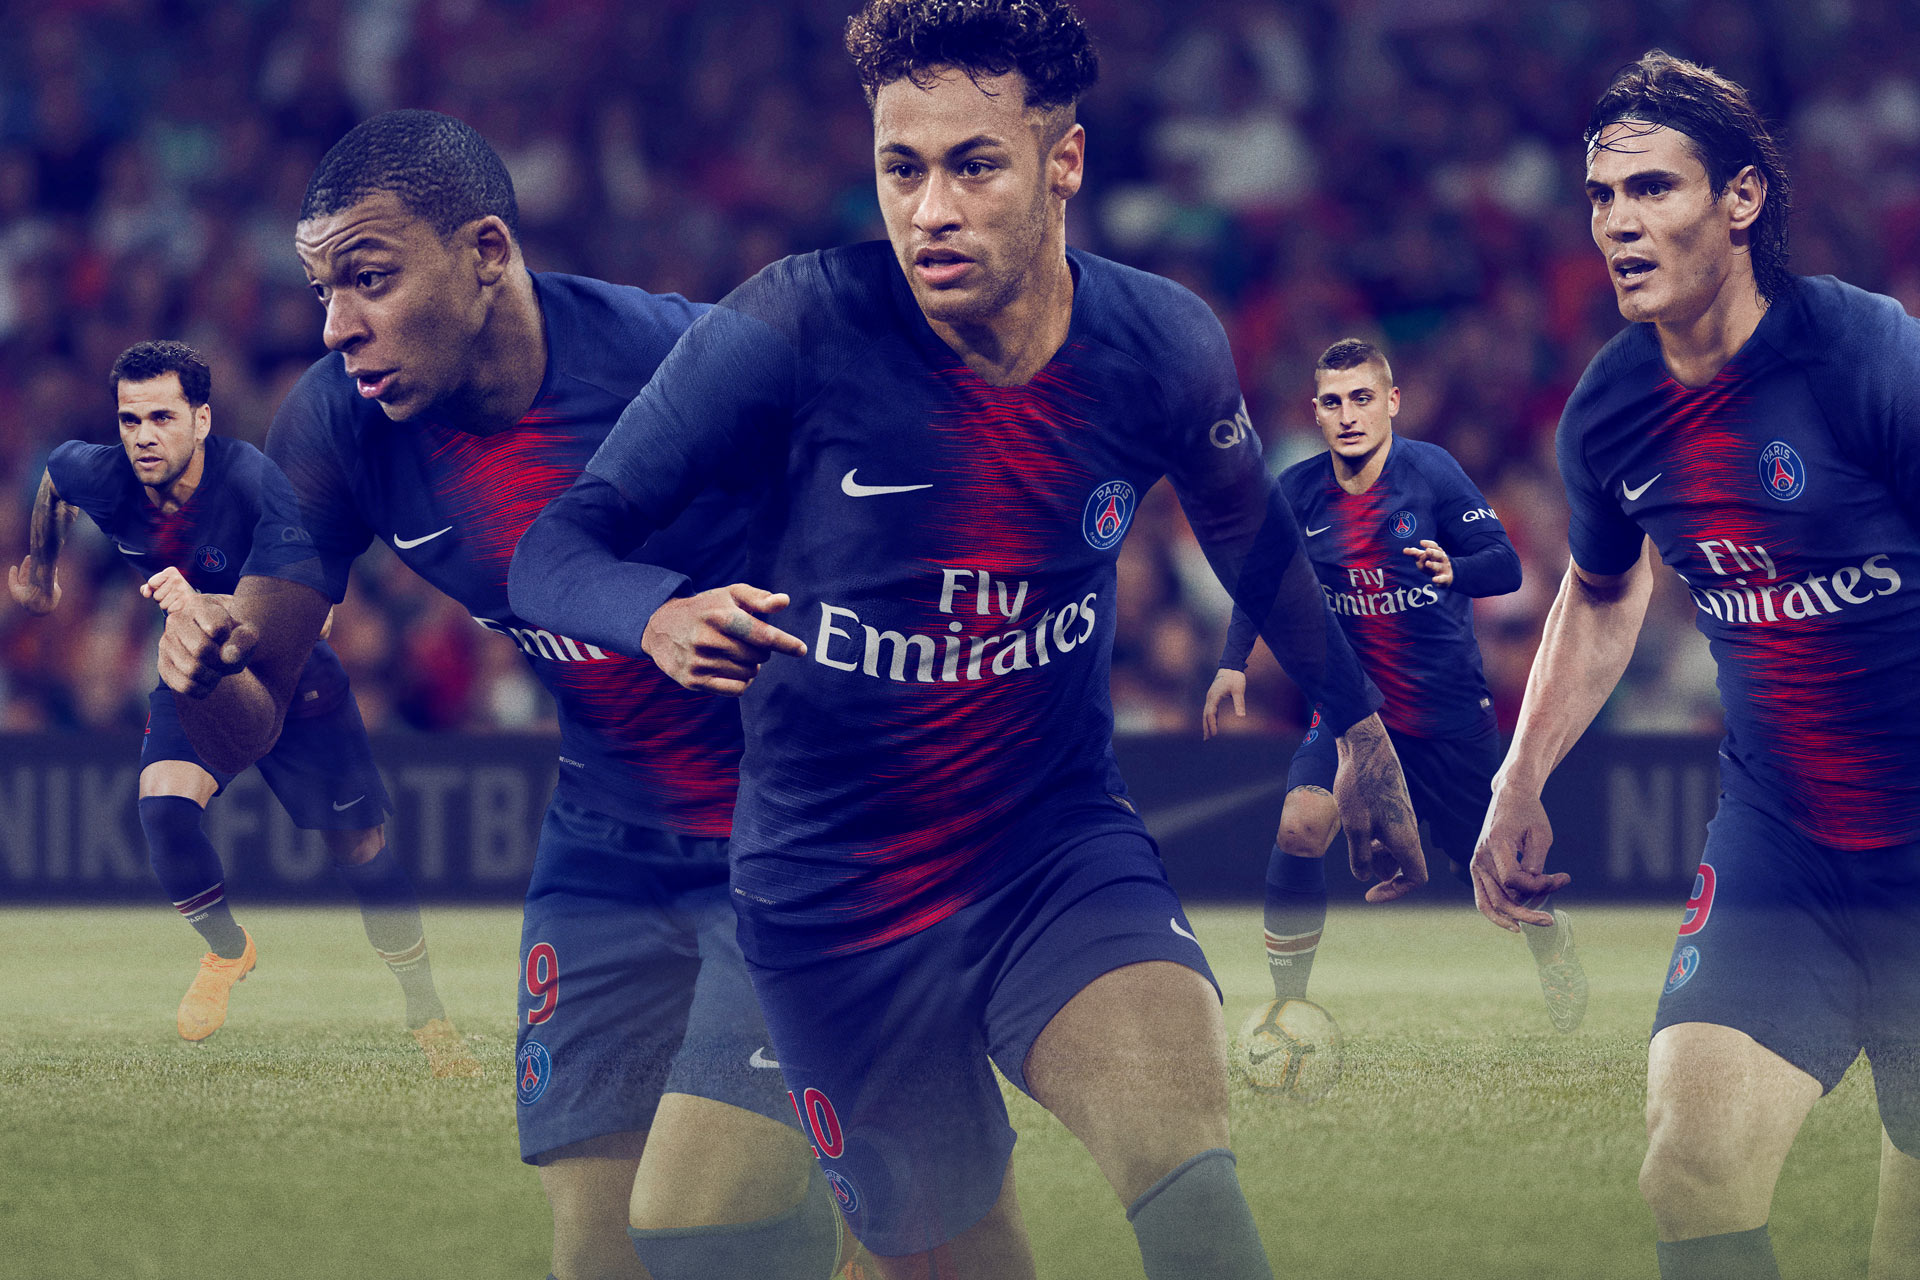 Neymar, Mbappe, Cavani, Veratti, Paris Saint-Germain (PSG) Home Kit 2018 Nike, Matthew Wolff